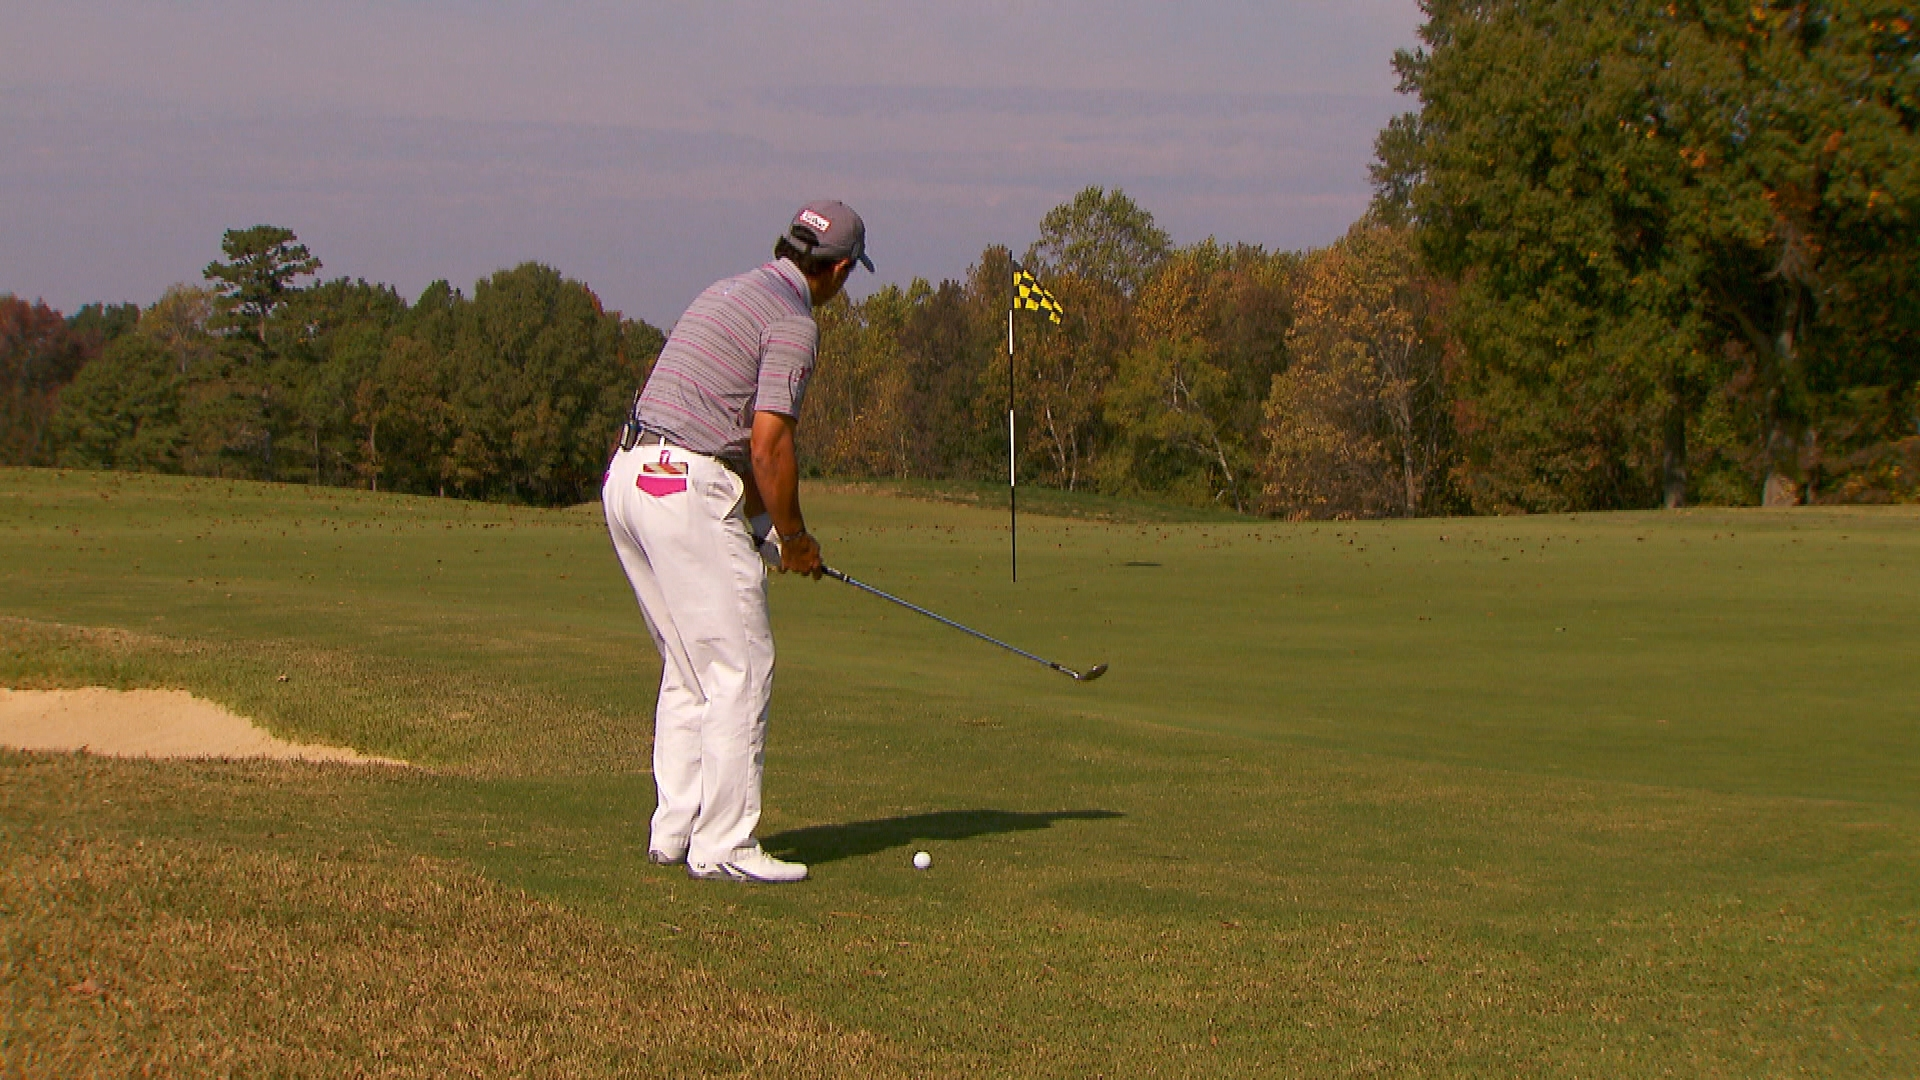 golf instruction on how to improve your golf putting game